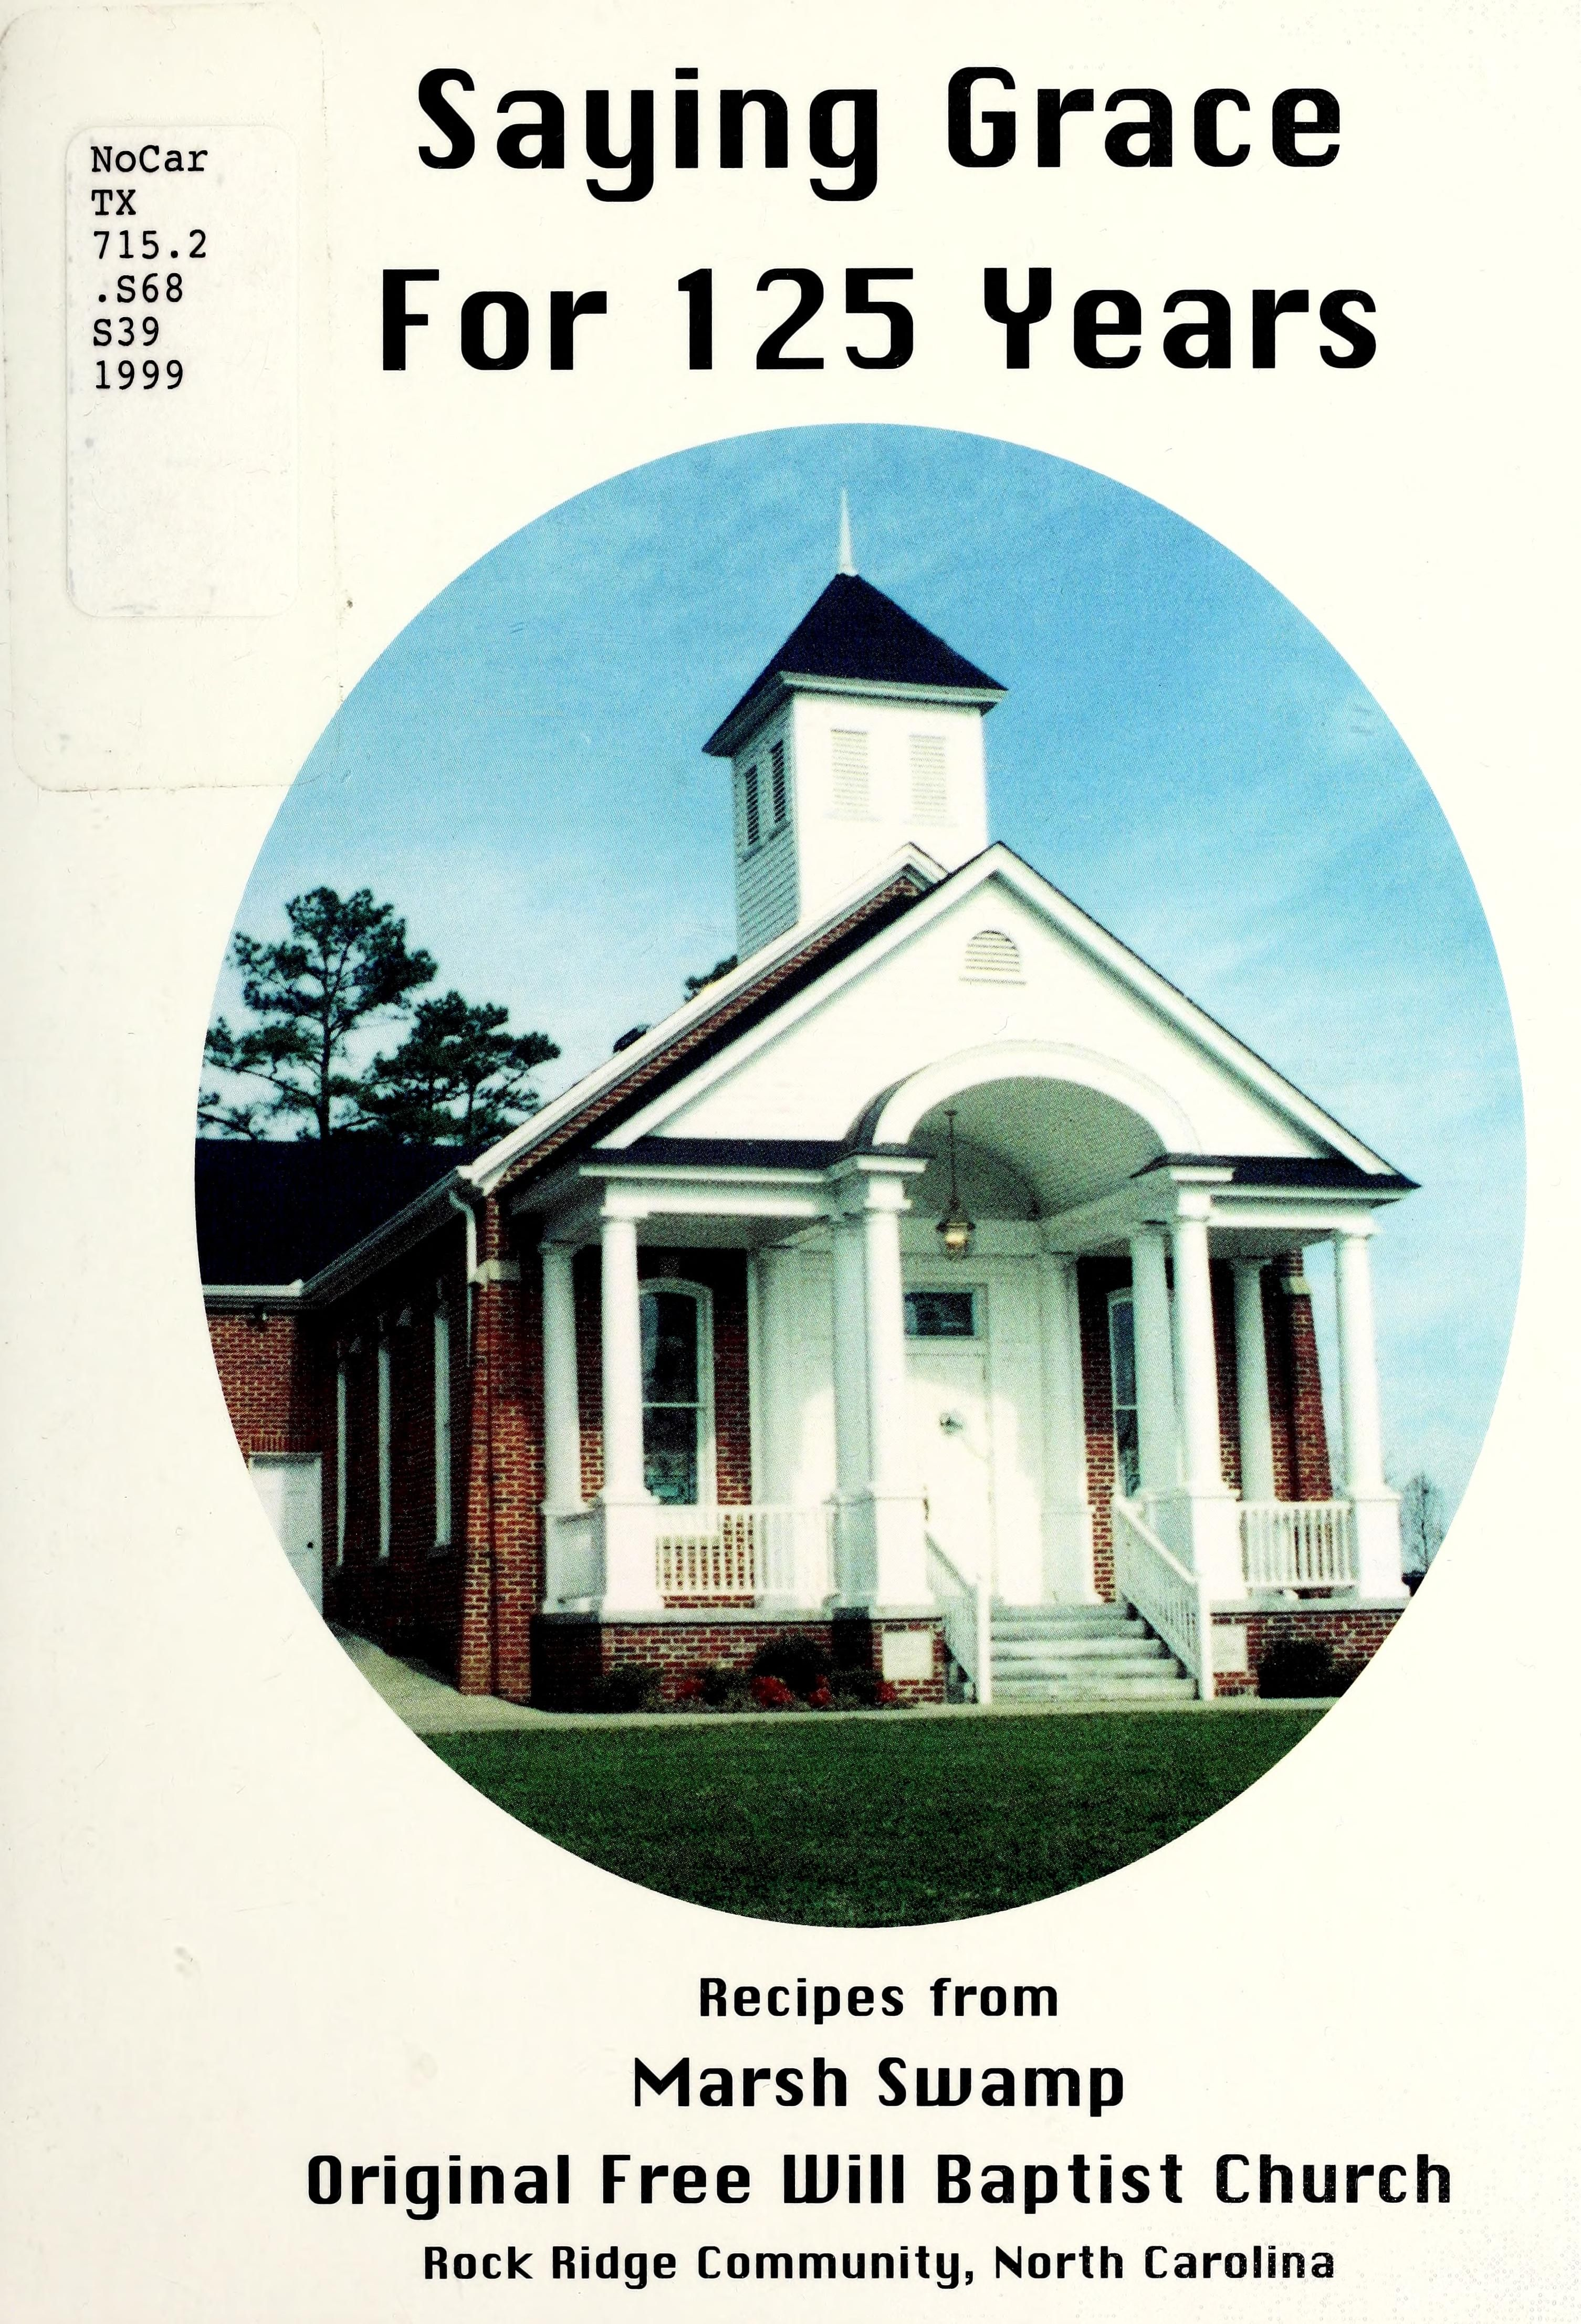 Saying grace for 125 years recipes from Marsh Swamp